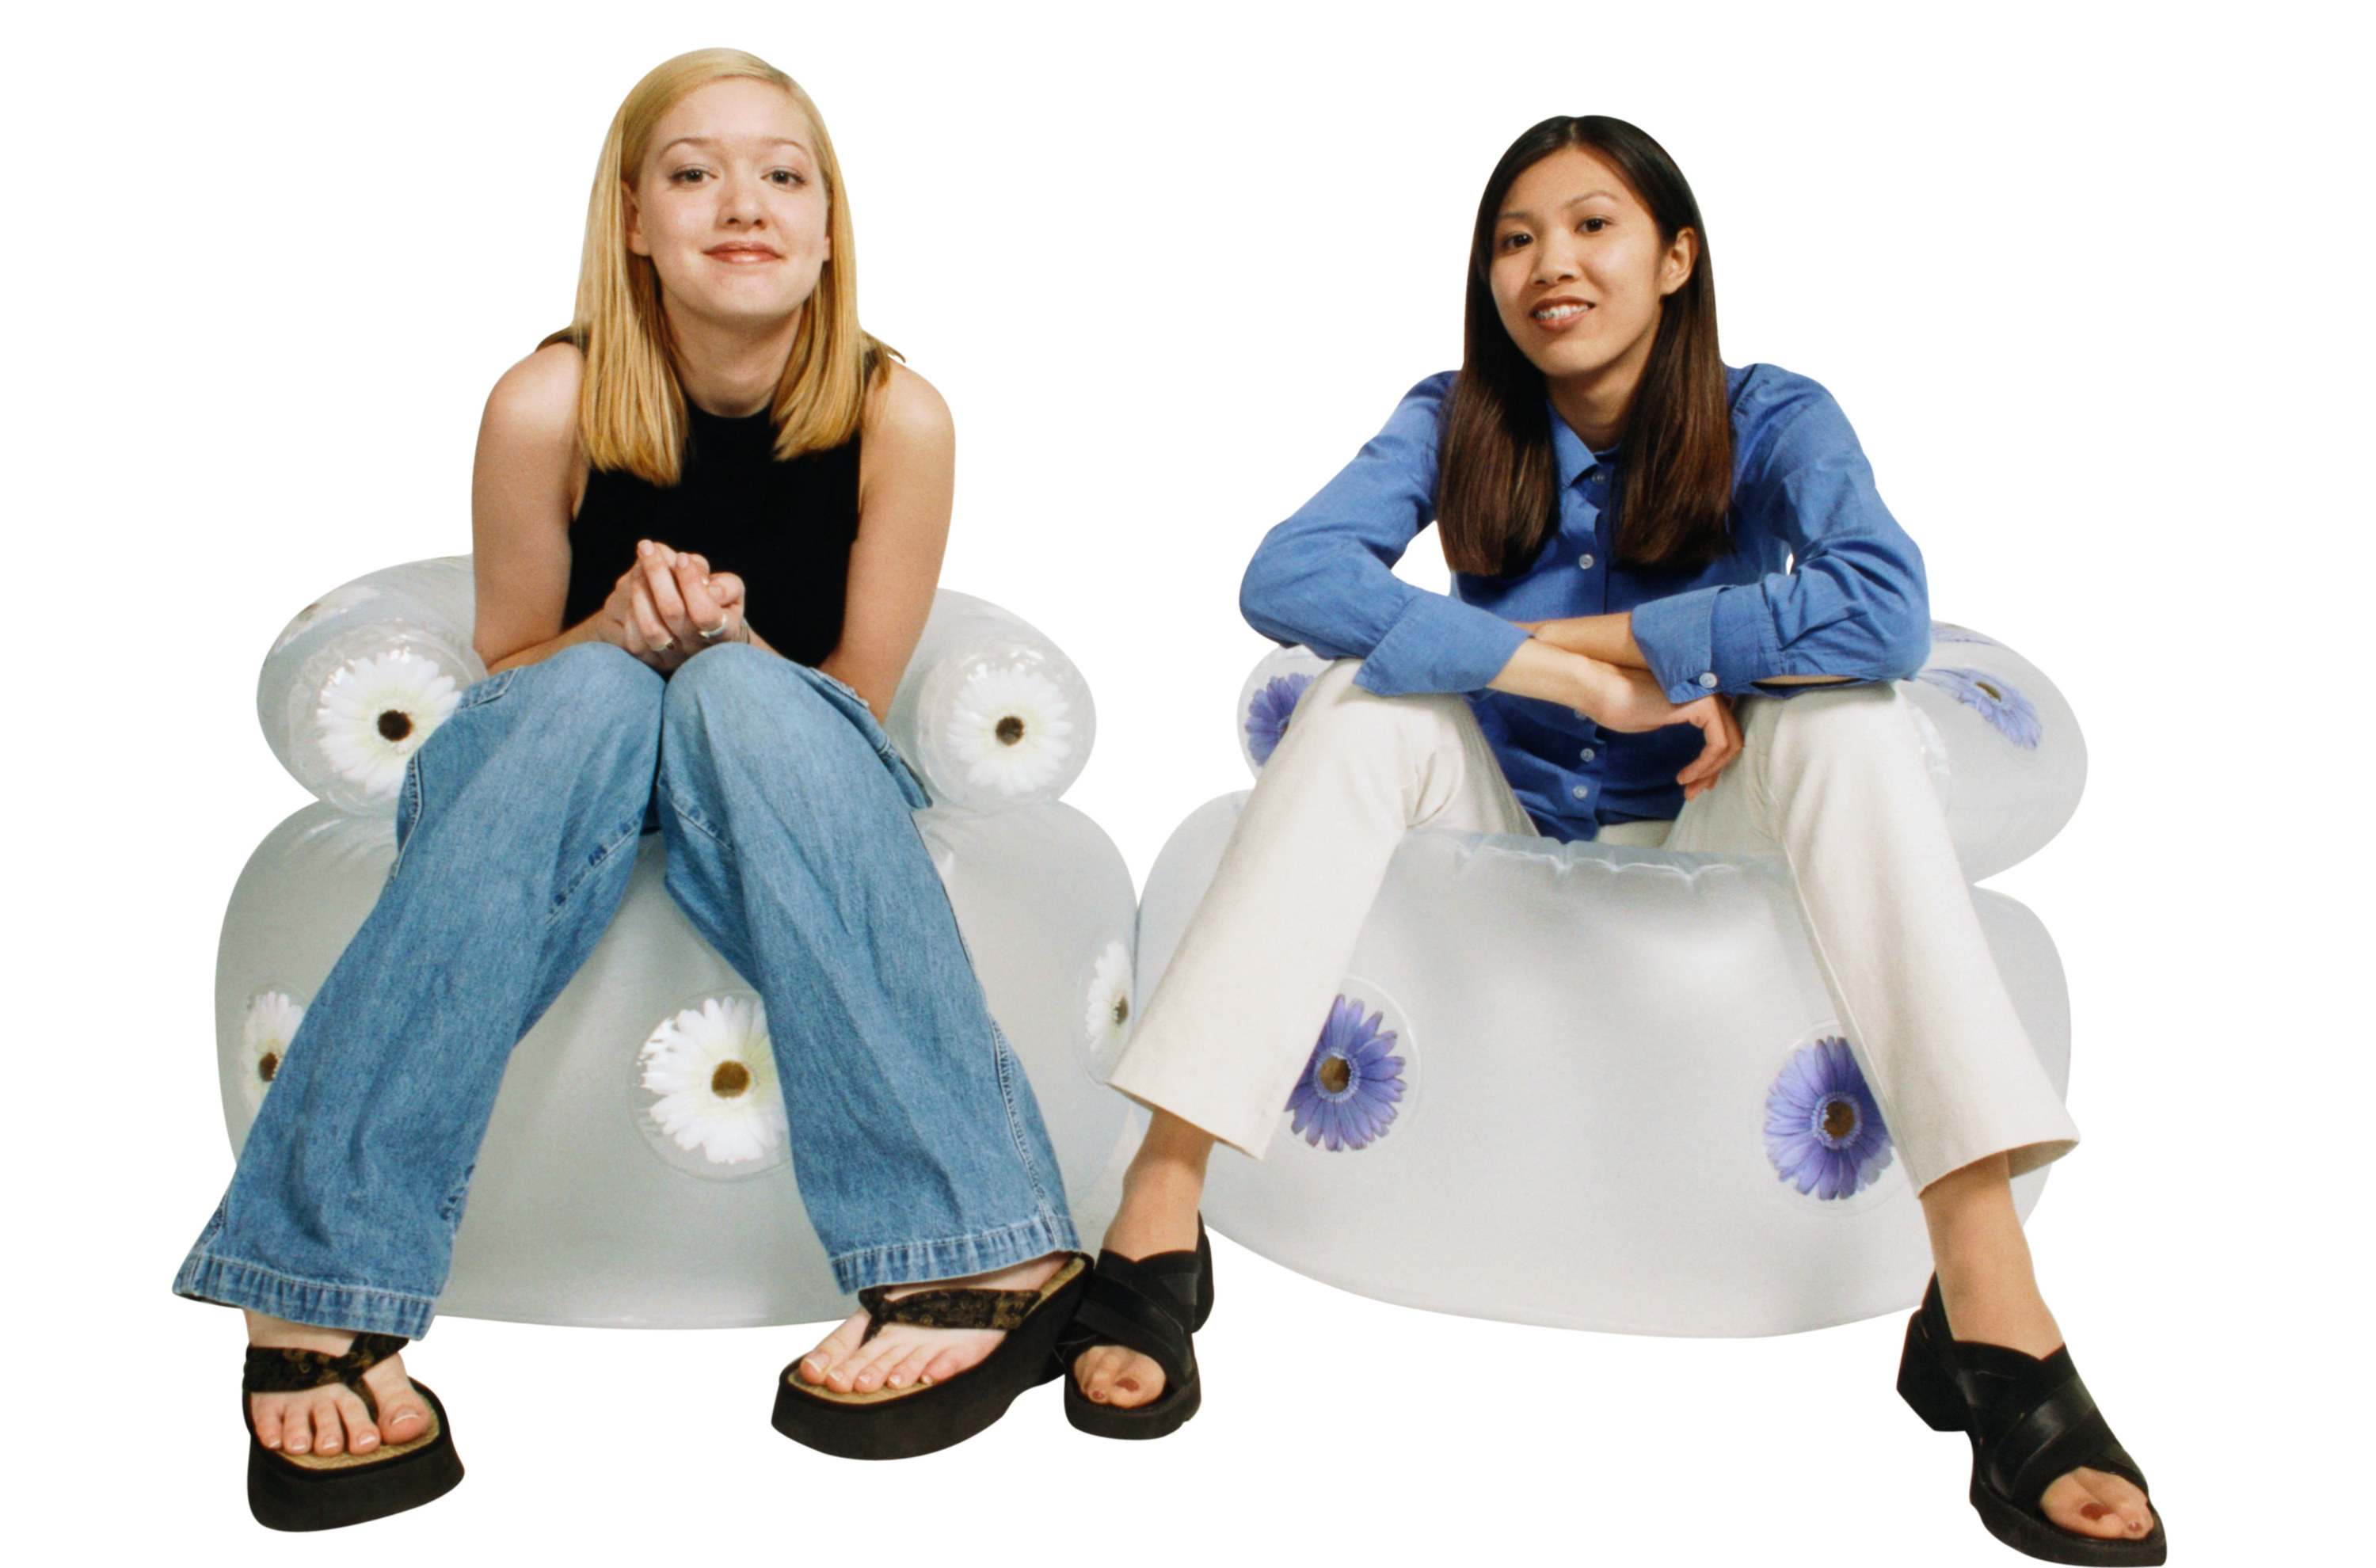 Two people from the '90s sitting in inflatable chairs